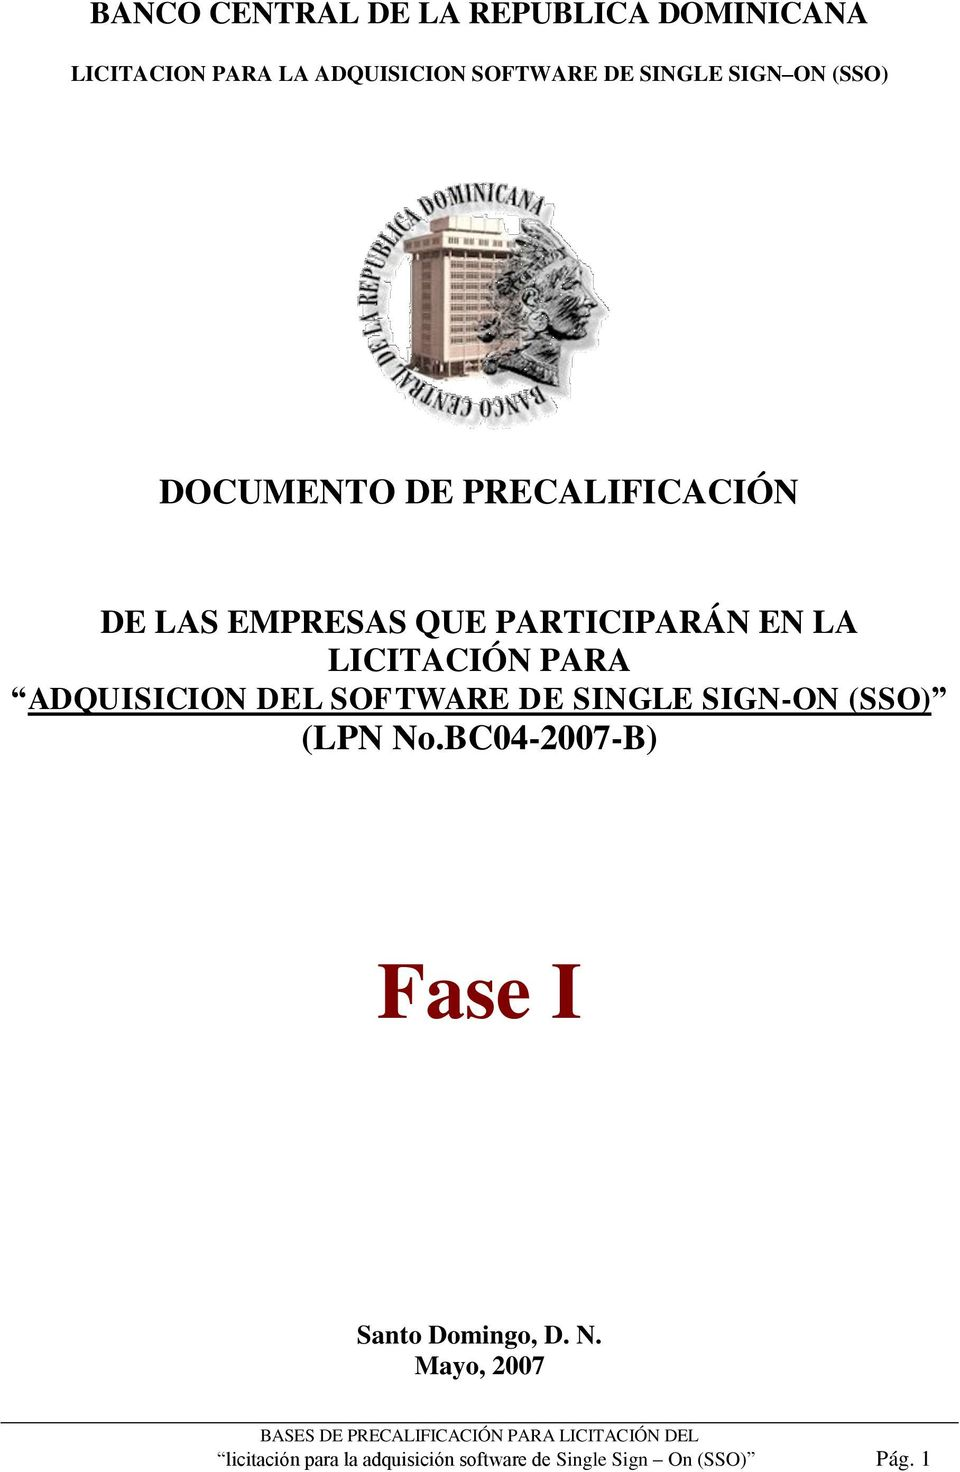 LICITACIÓN PARA ADQUISICION DEL SOFTWARE DE SINGLE SIGN-ON (SSO) (LPN No.